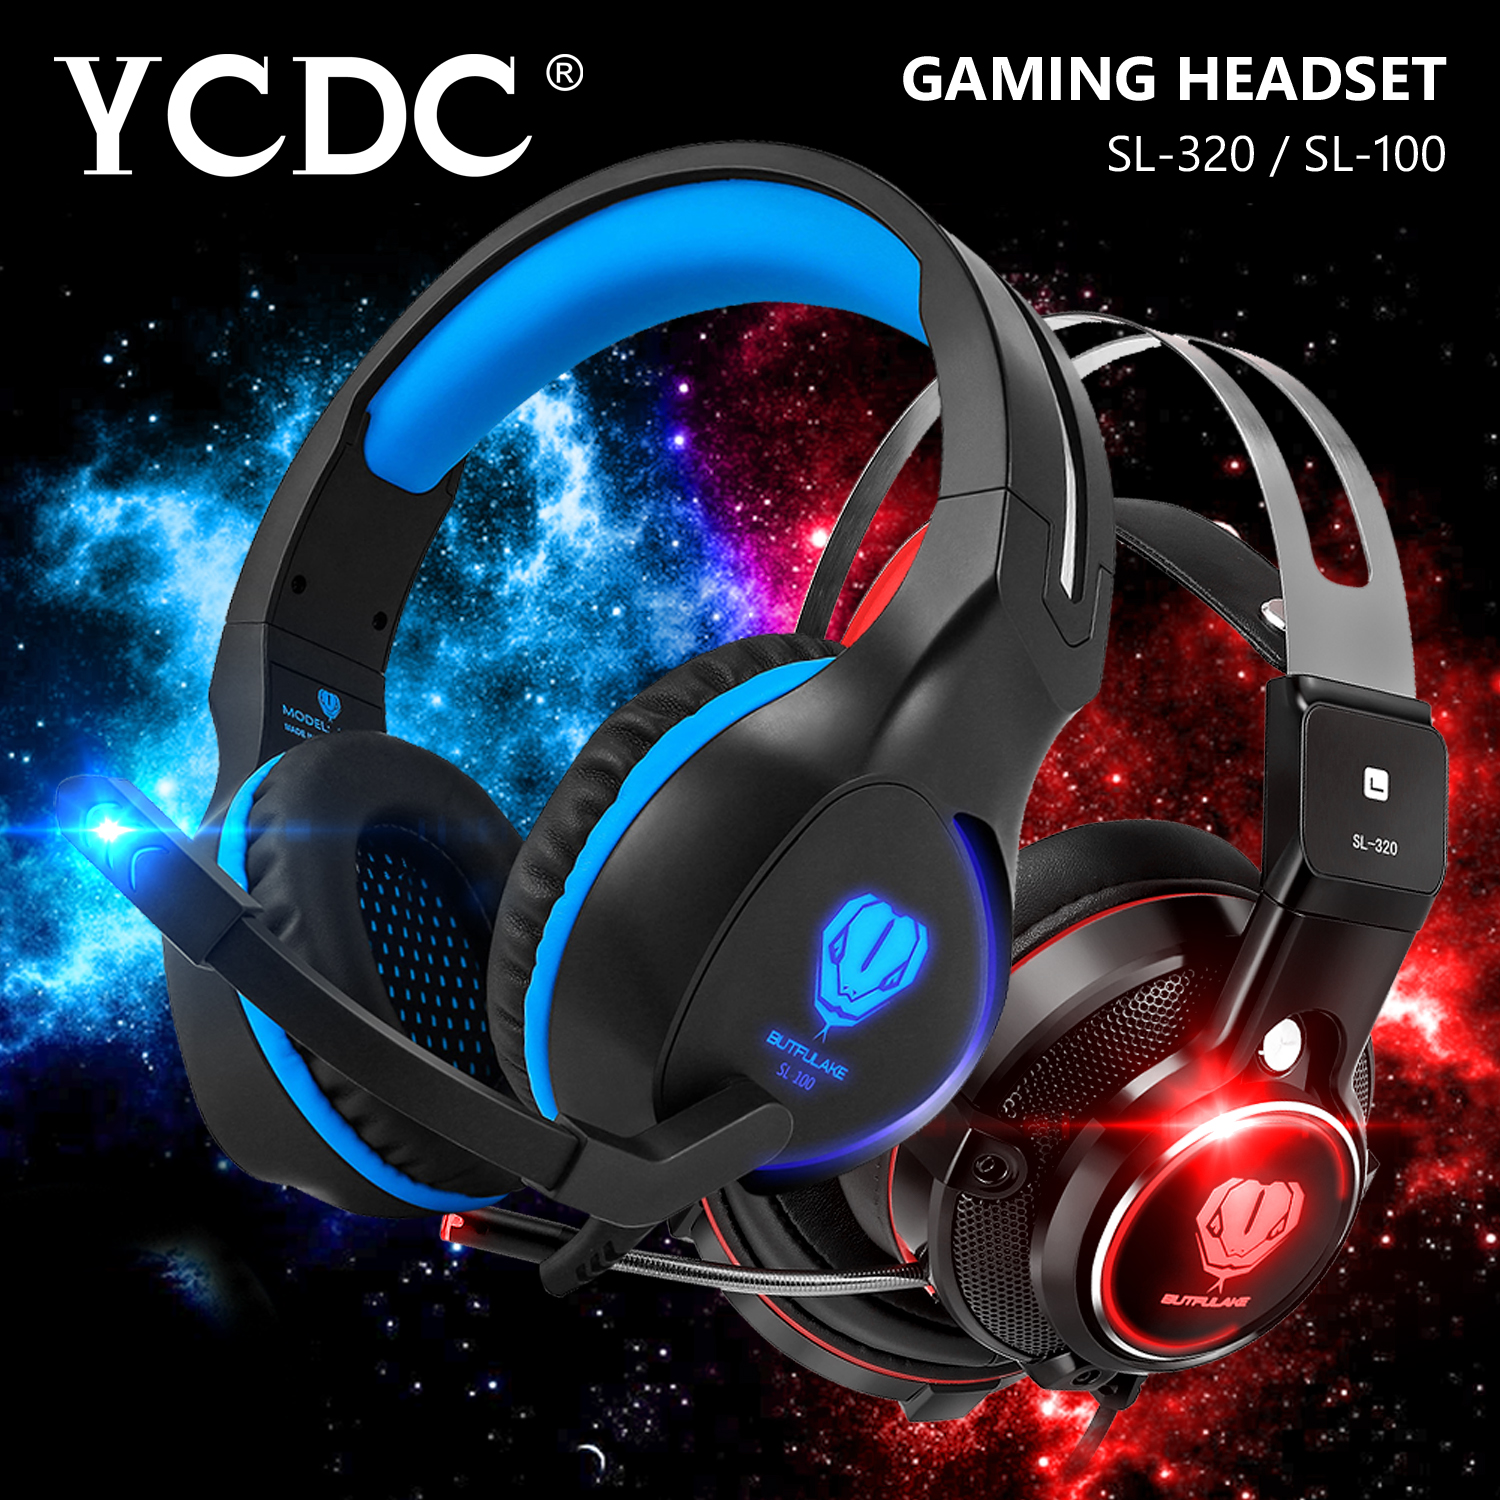 YCDC SL-100 / 320 Headband PC Gamer Game Headset USB Virtual Surround Sound Stereo Bass Pro Gaming Headphone with Mic LED xiberia k9 usb surround stereo gaming headphone with microphone mic pc gamer led breath light headband game headset for lol cf